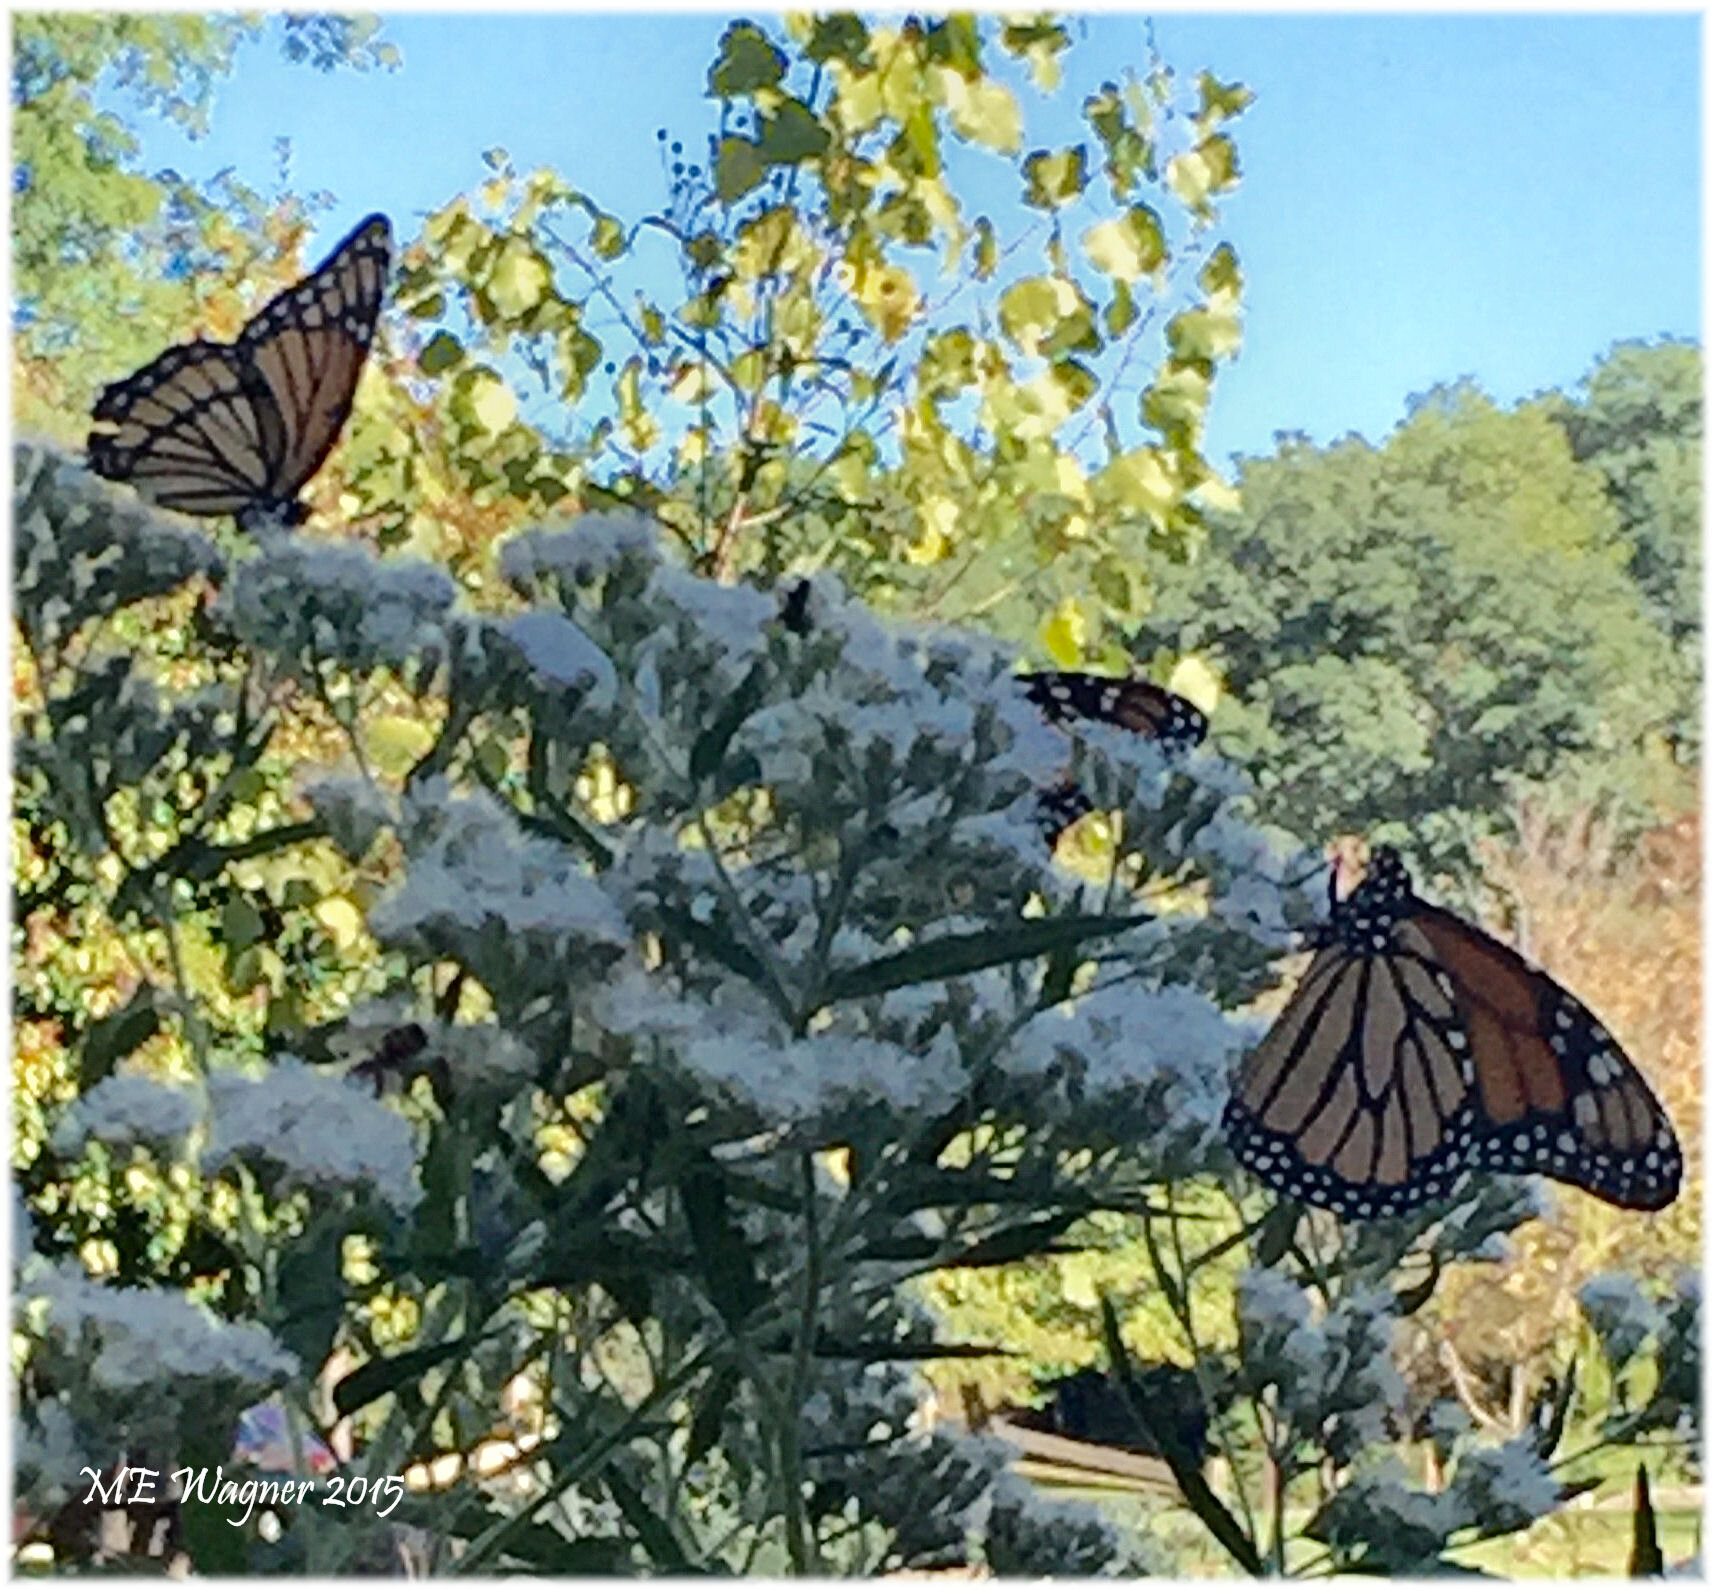 Adult monarch,  Danaus plexippus,  and viceroy,  Limenitis archippus , butterflies look very similar. Although the viceroy is slightly smaller than the monarch, a key field mark of a viceroy is a black line across the hind wings.    Photograph courtesy of Mary Ann Wagner